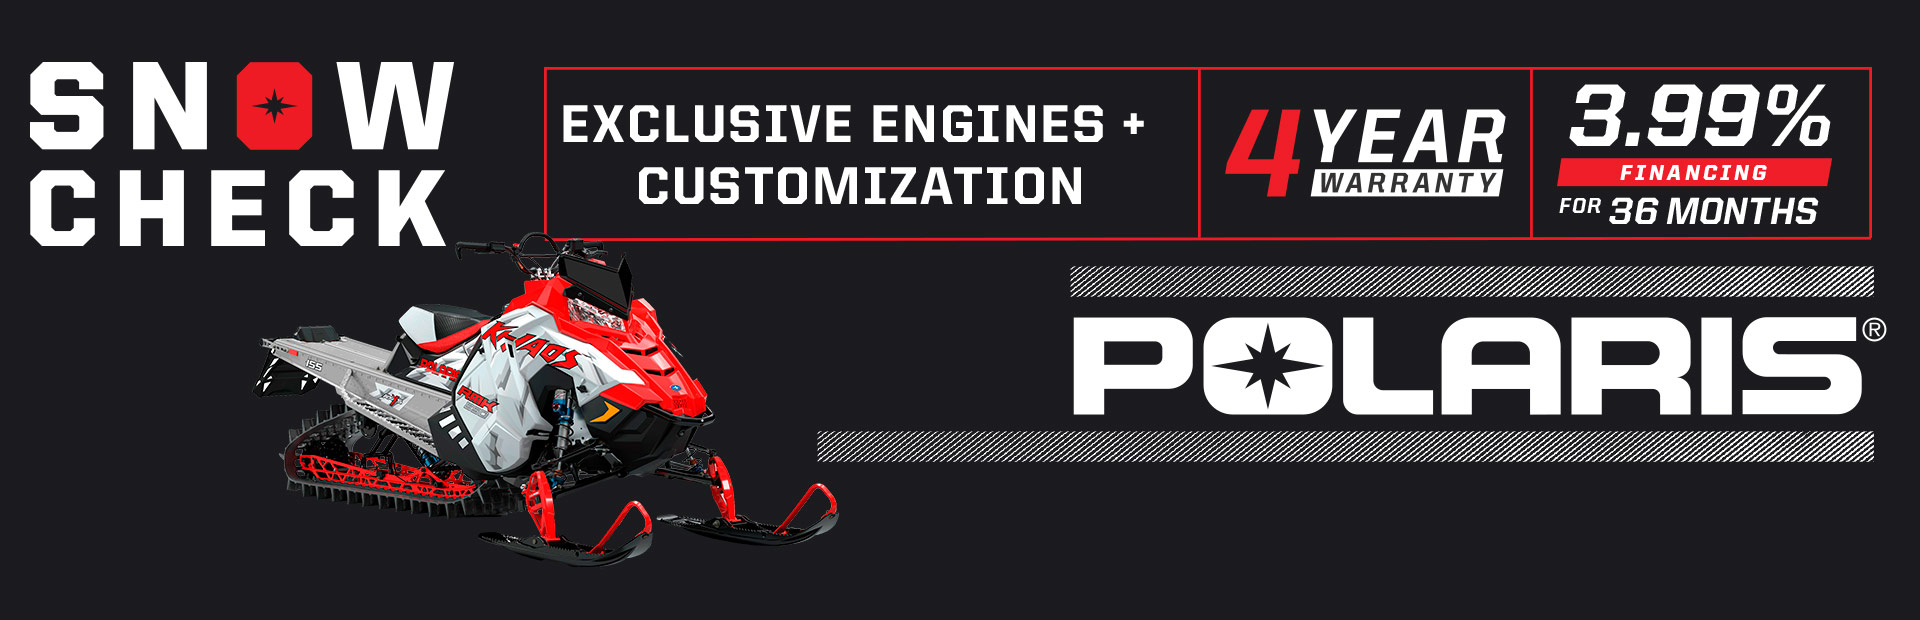 Snowcheck Exclusive Engines & Customization